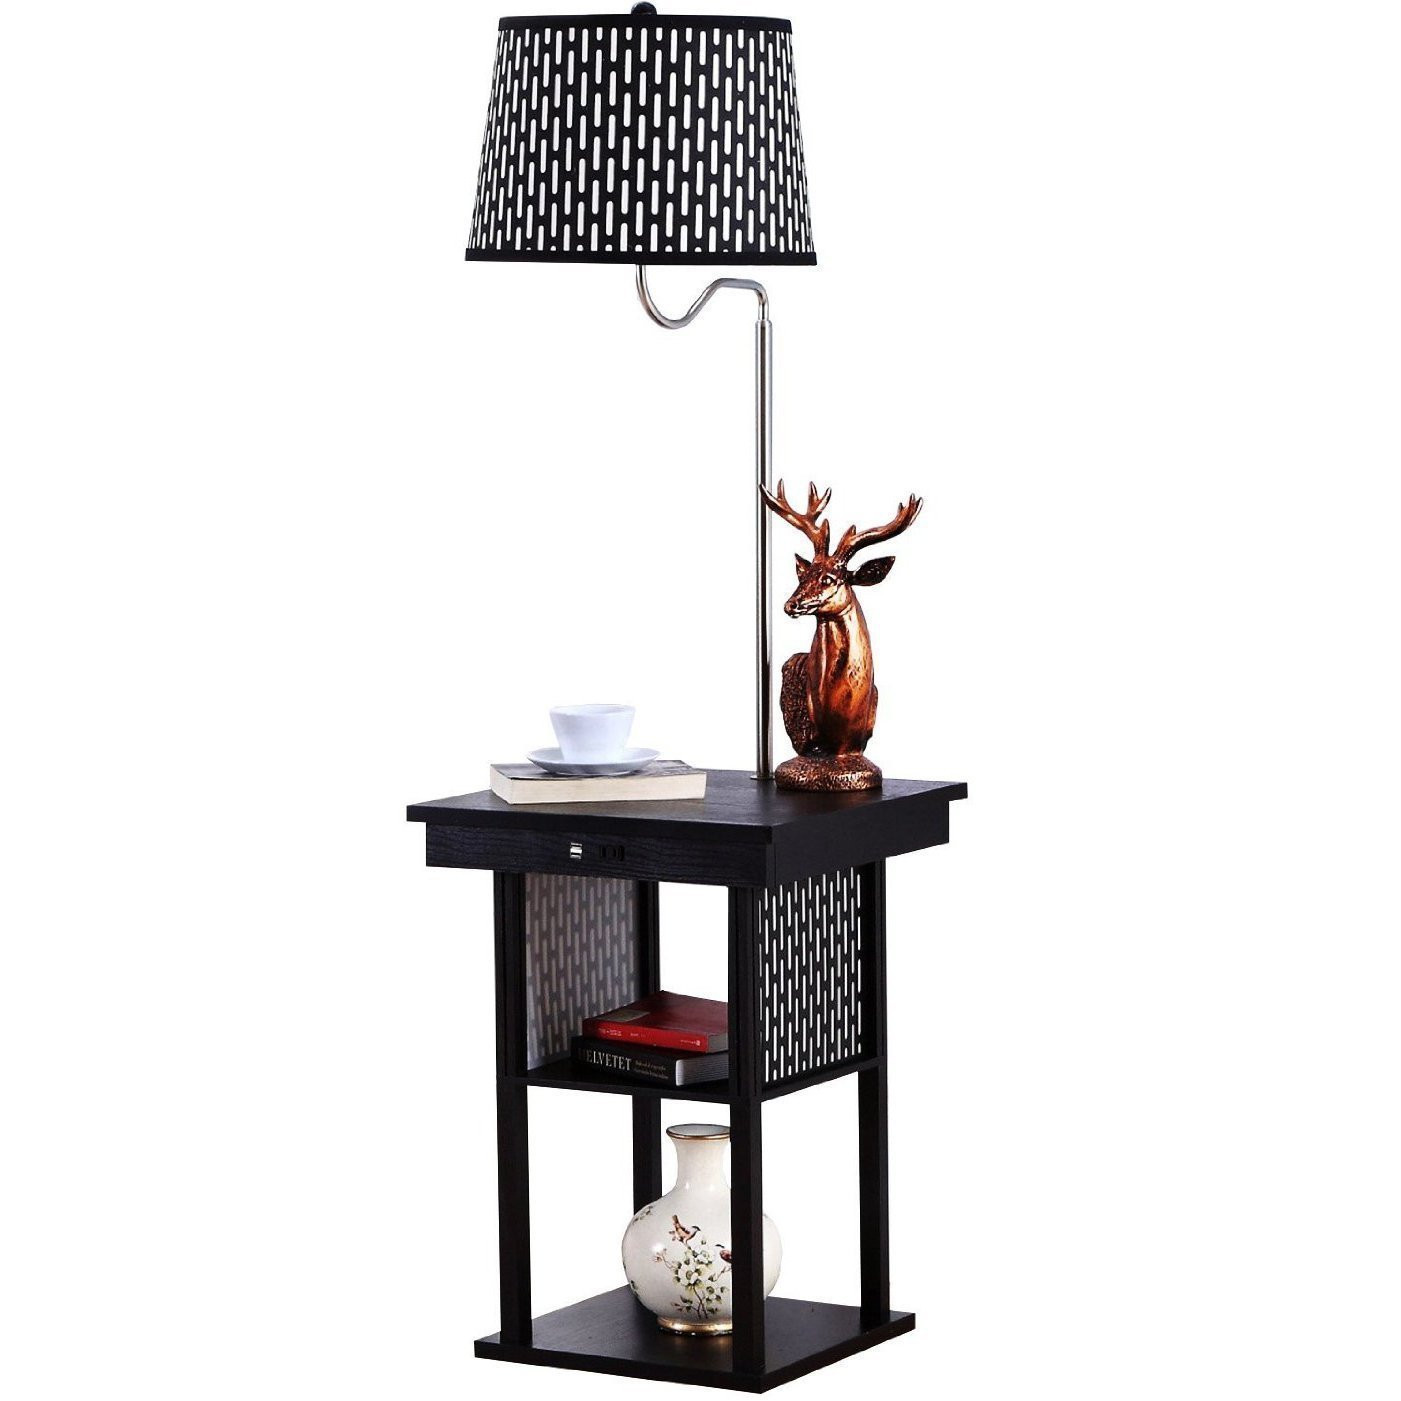 Brightech   Madison Floor Lamp With Built In Two Tier Black Table With Open  Display Space   Outfitted With ...